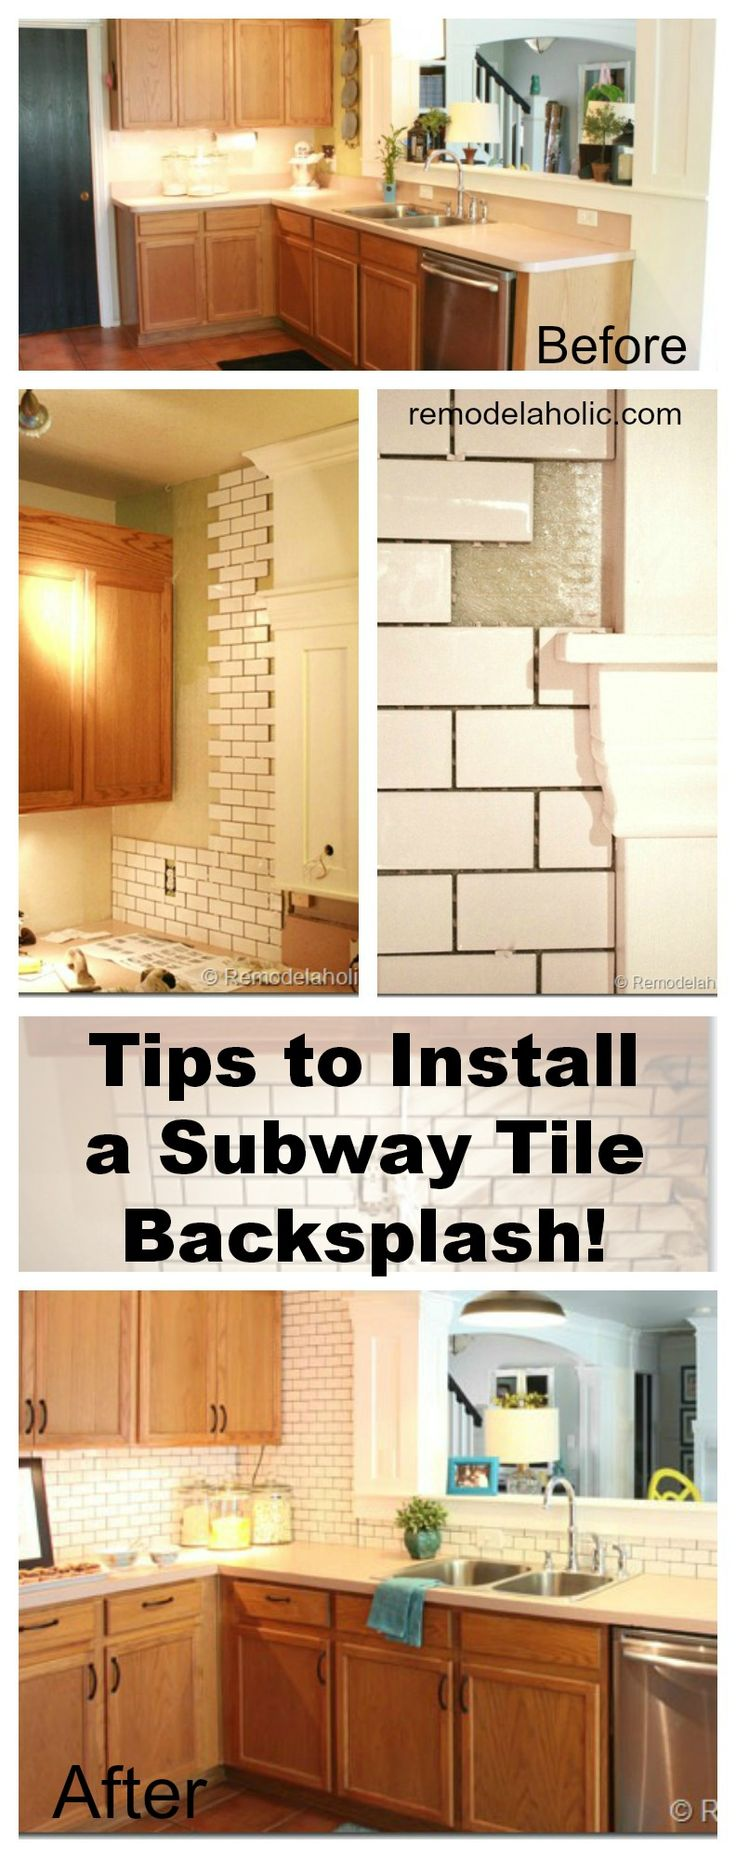 Best 25 tile back splashes ideas on pinterest back splashes back patio kitchen ideas and - Nice subway tile bathroom designs with tips ...